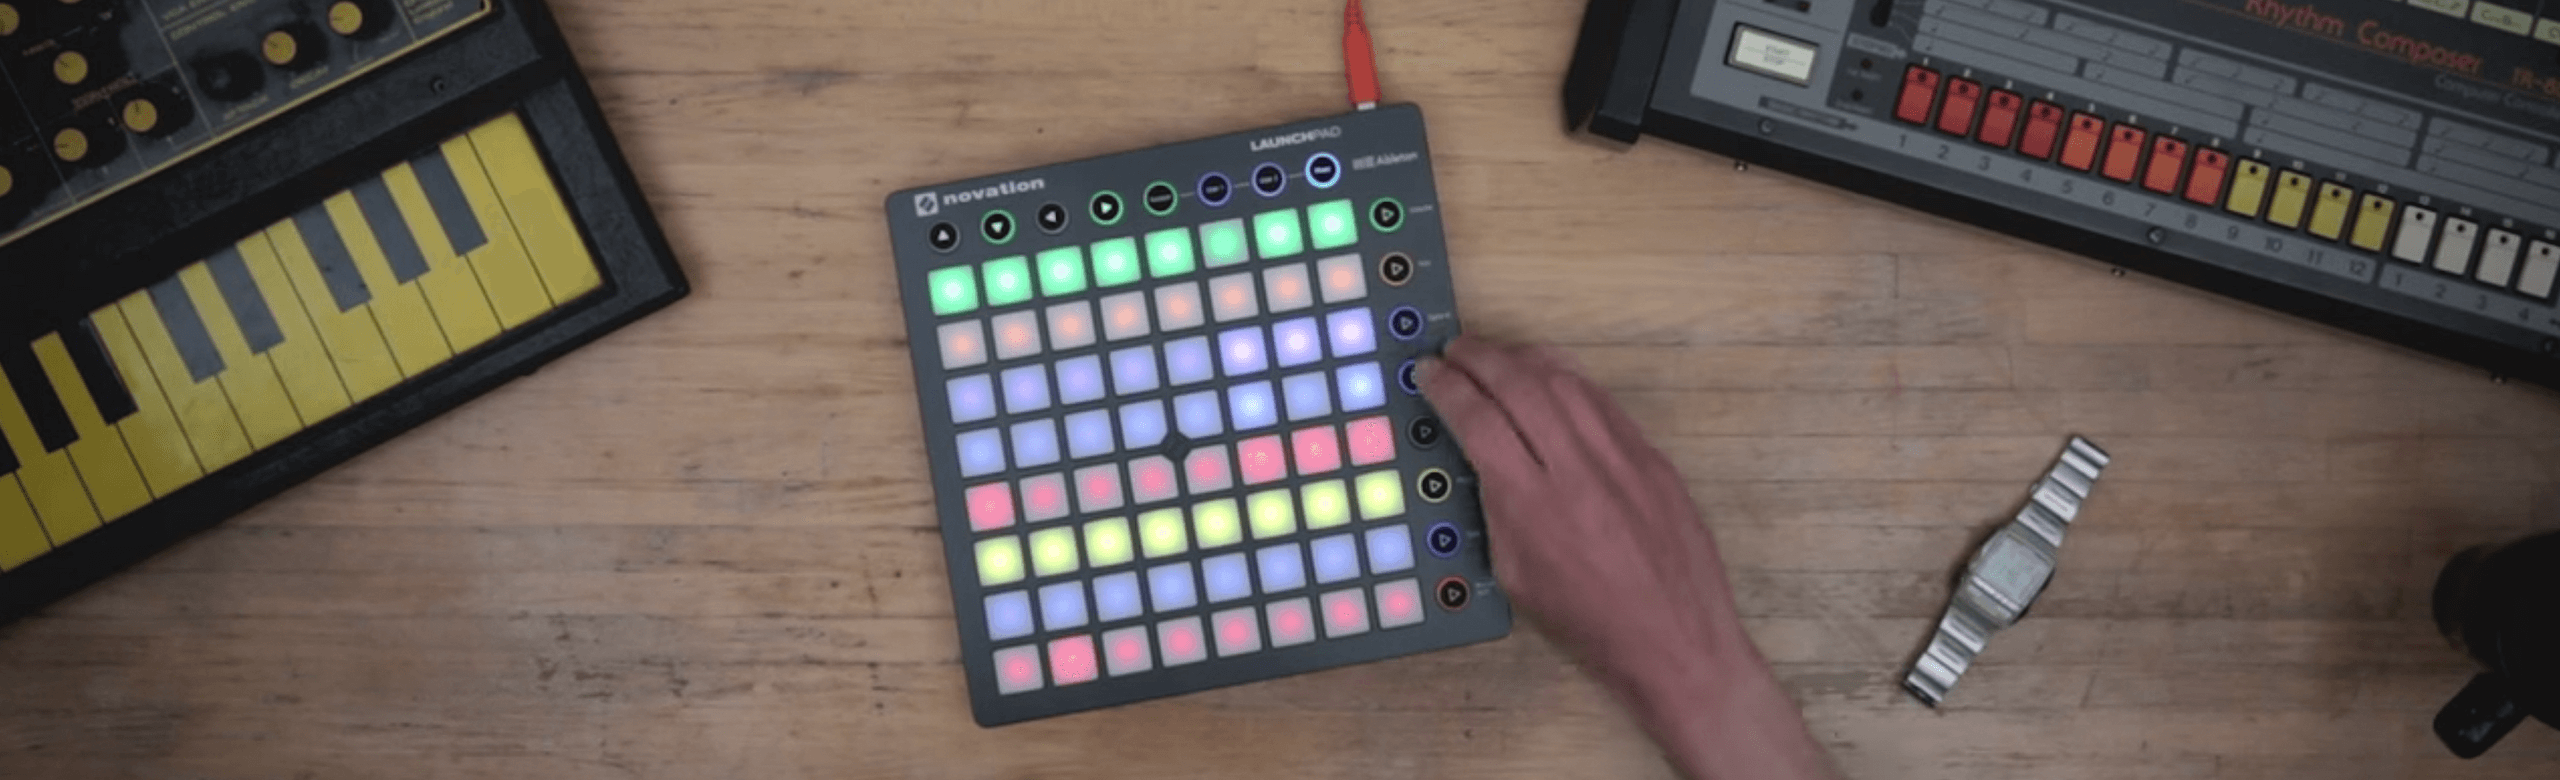 Launchpad feat. Buddy Peace